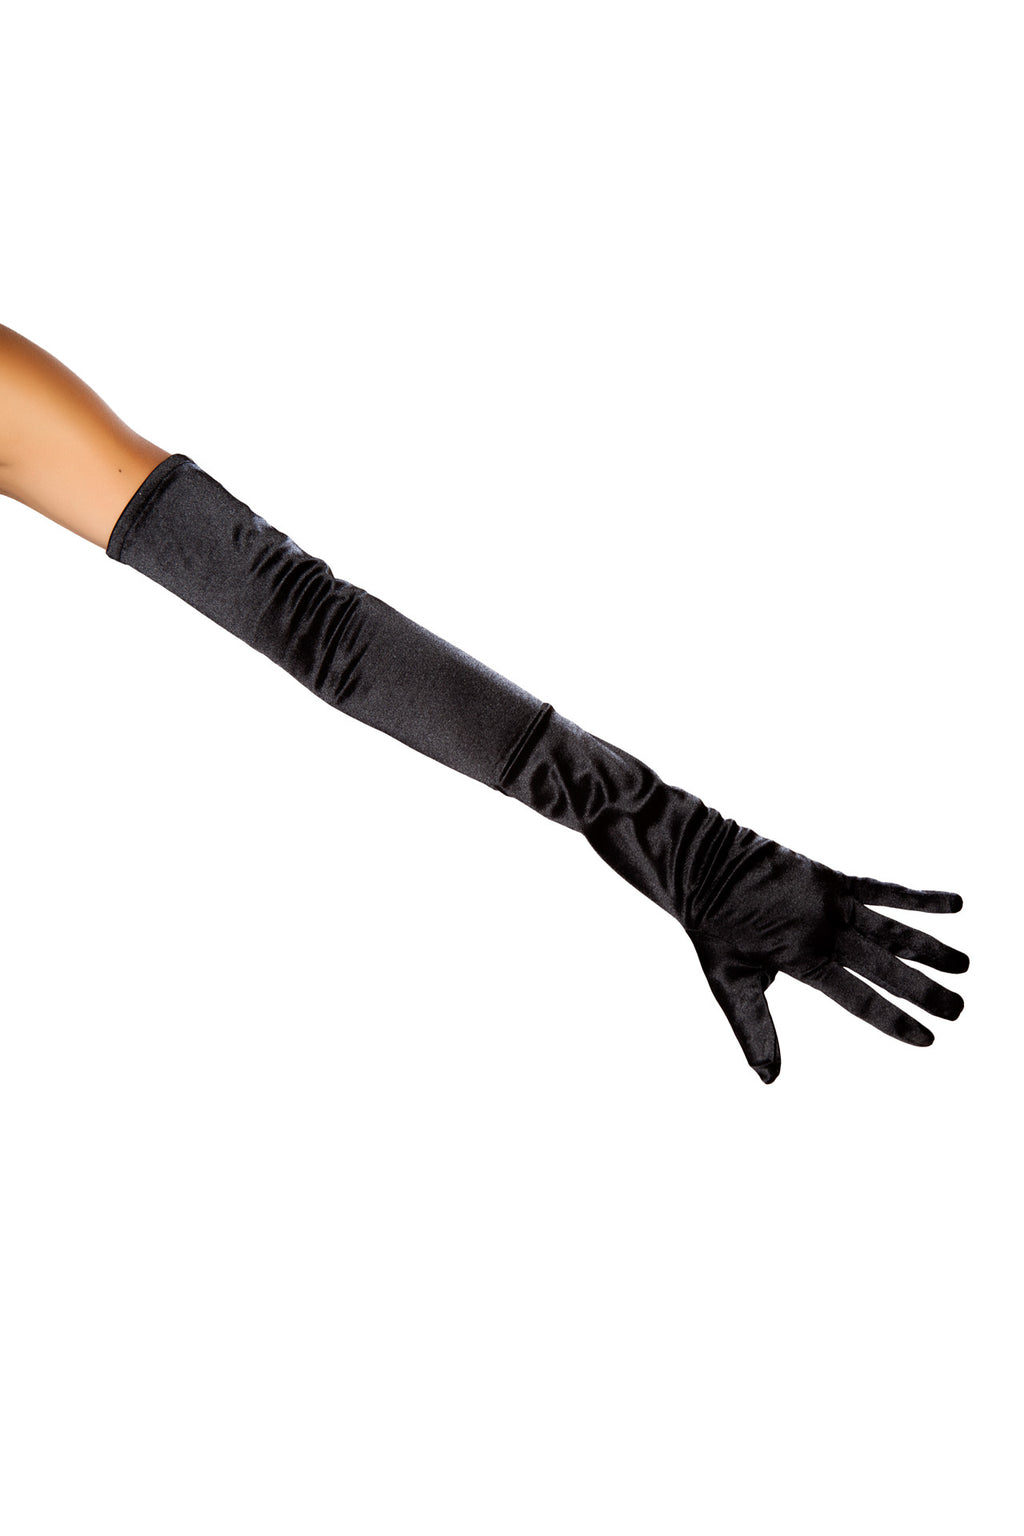 Adult-Women's-Satin-Classy-Elbow-Length-Gloves-Party-Costume-Accessory---Multiple-Colors